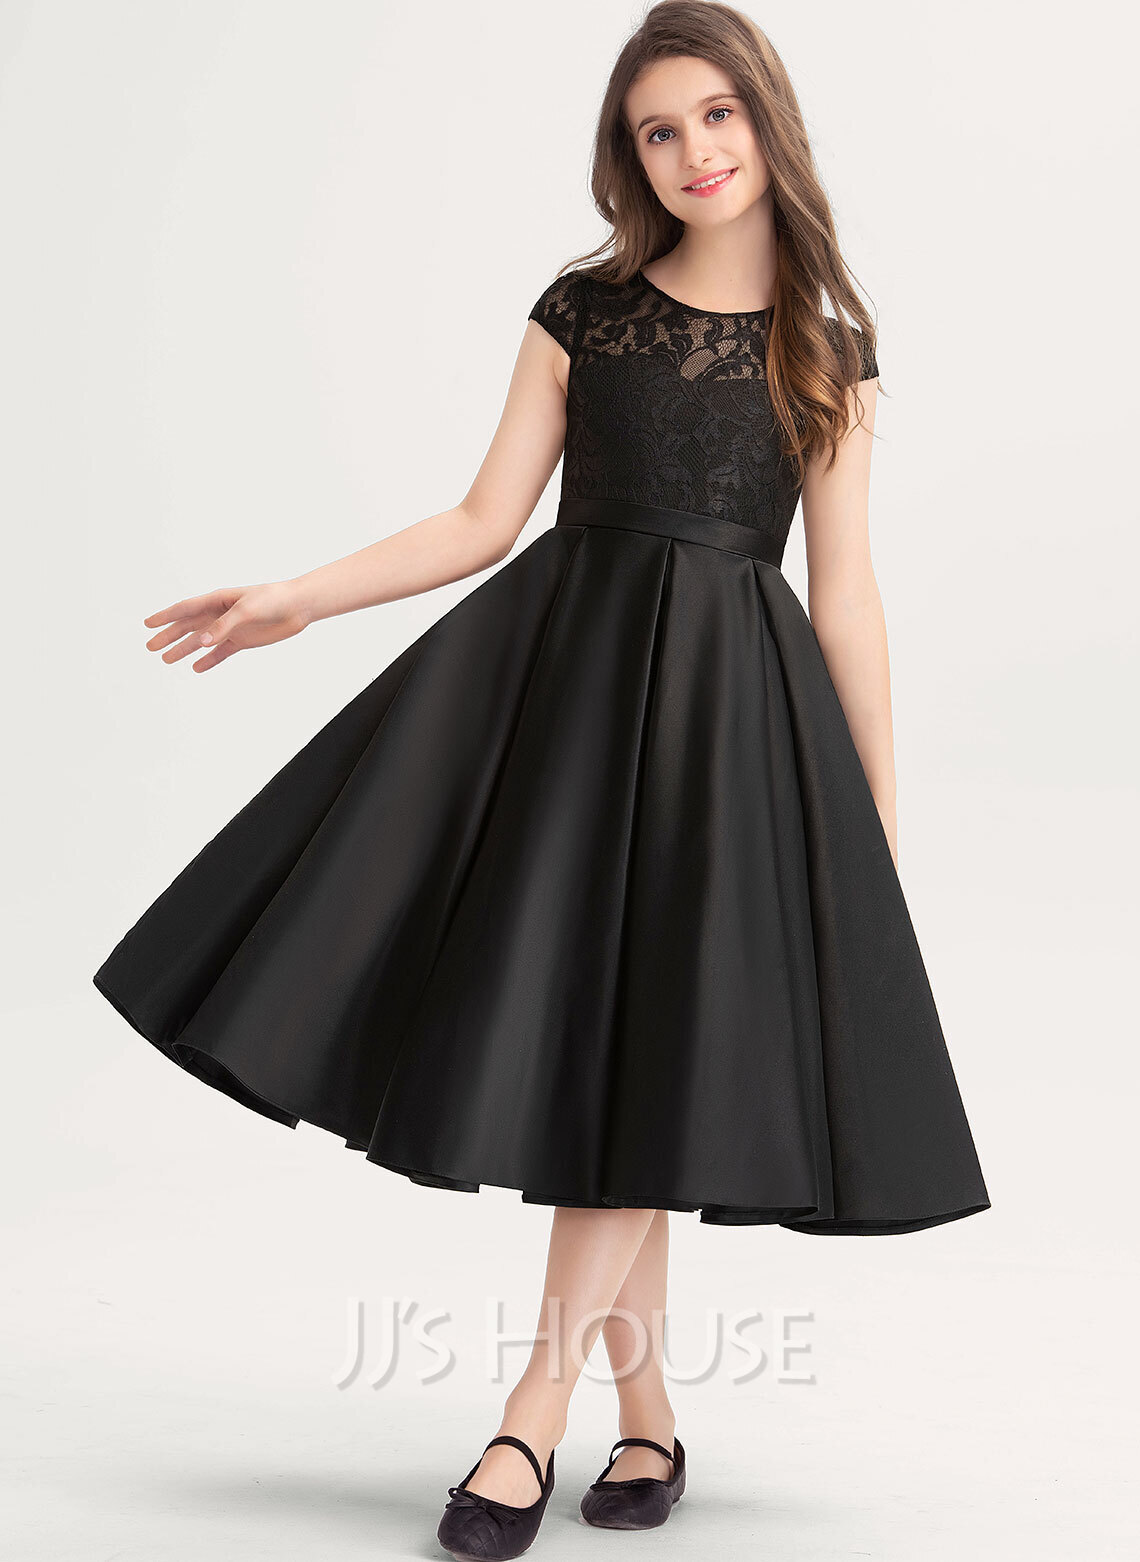 Scoop Neck Knee-Length Satin Lace Junior Bridesmaid Dress With Pockets